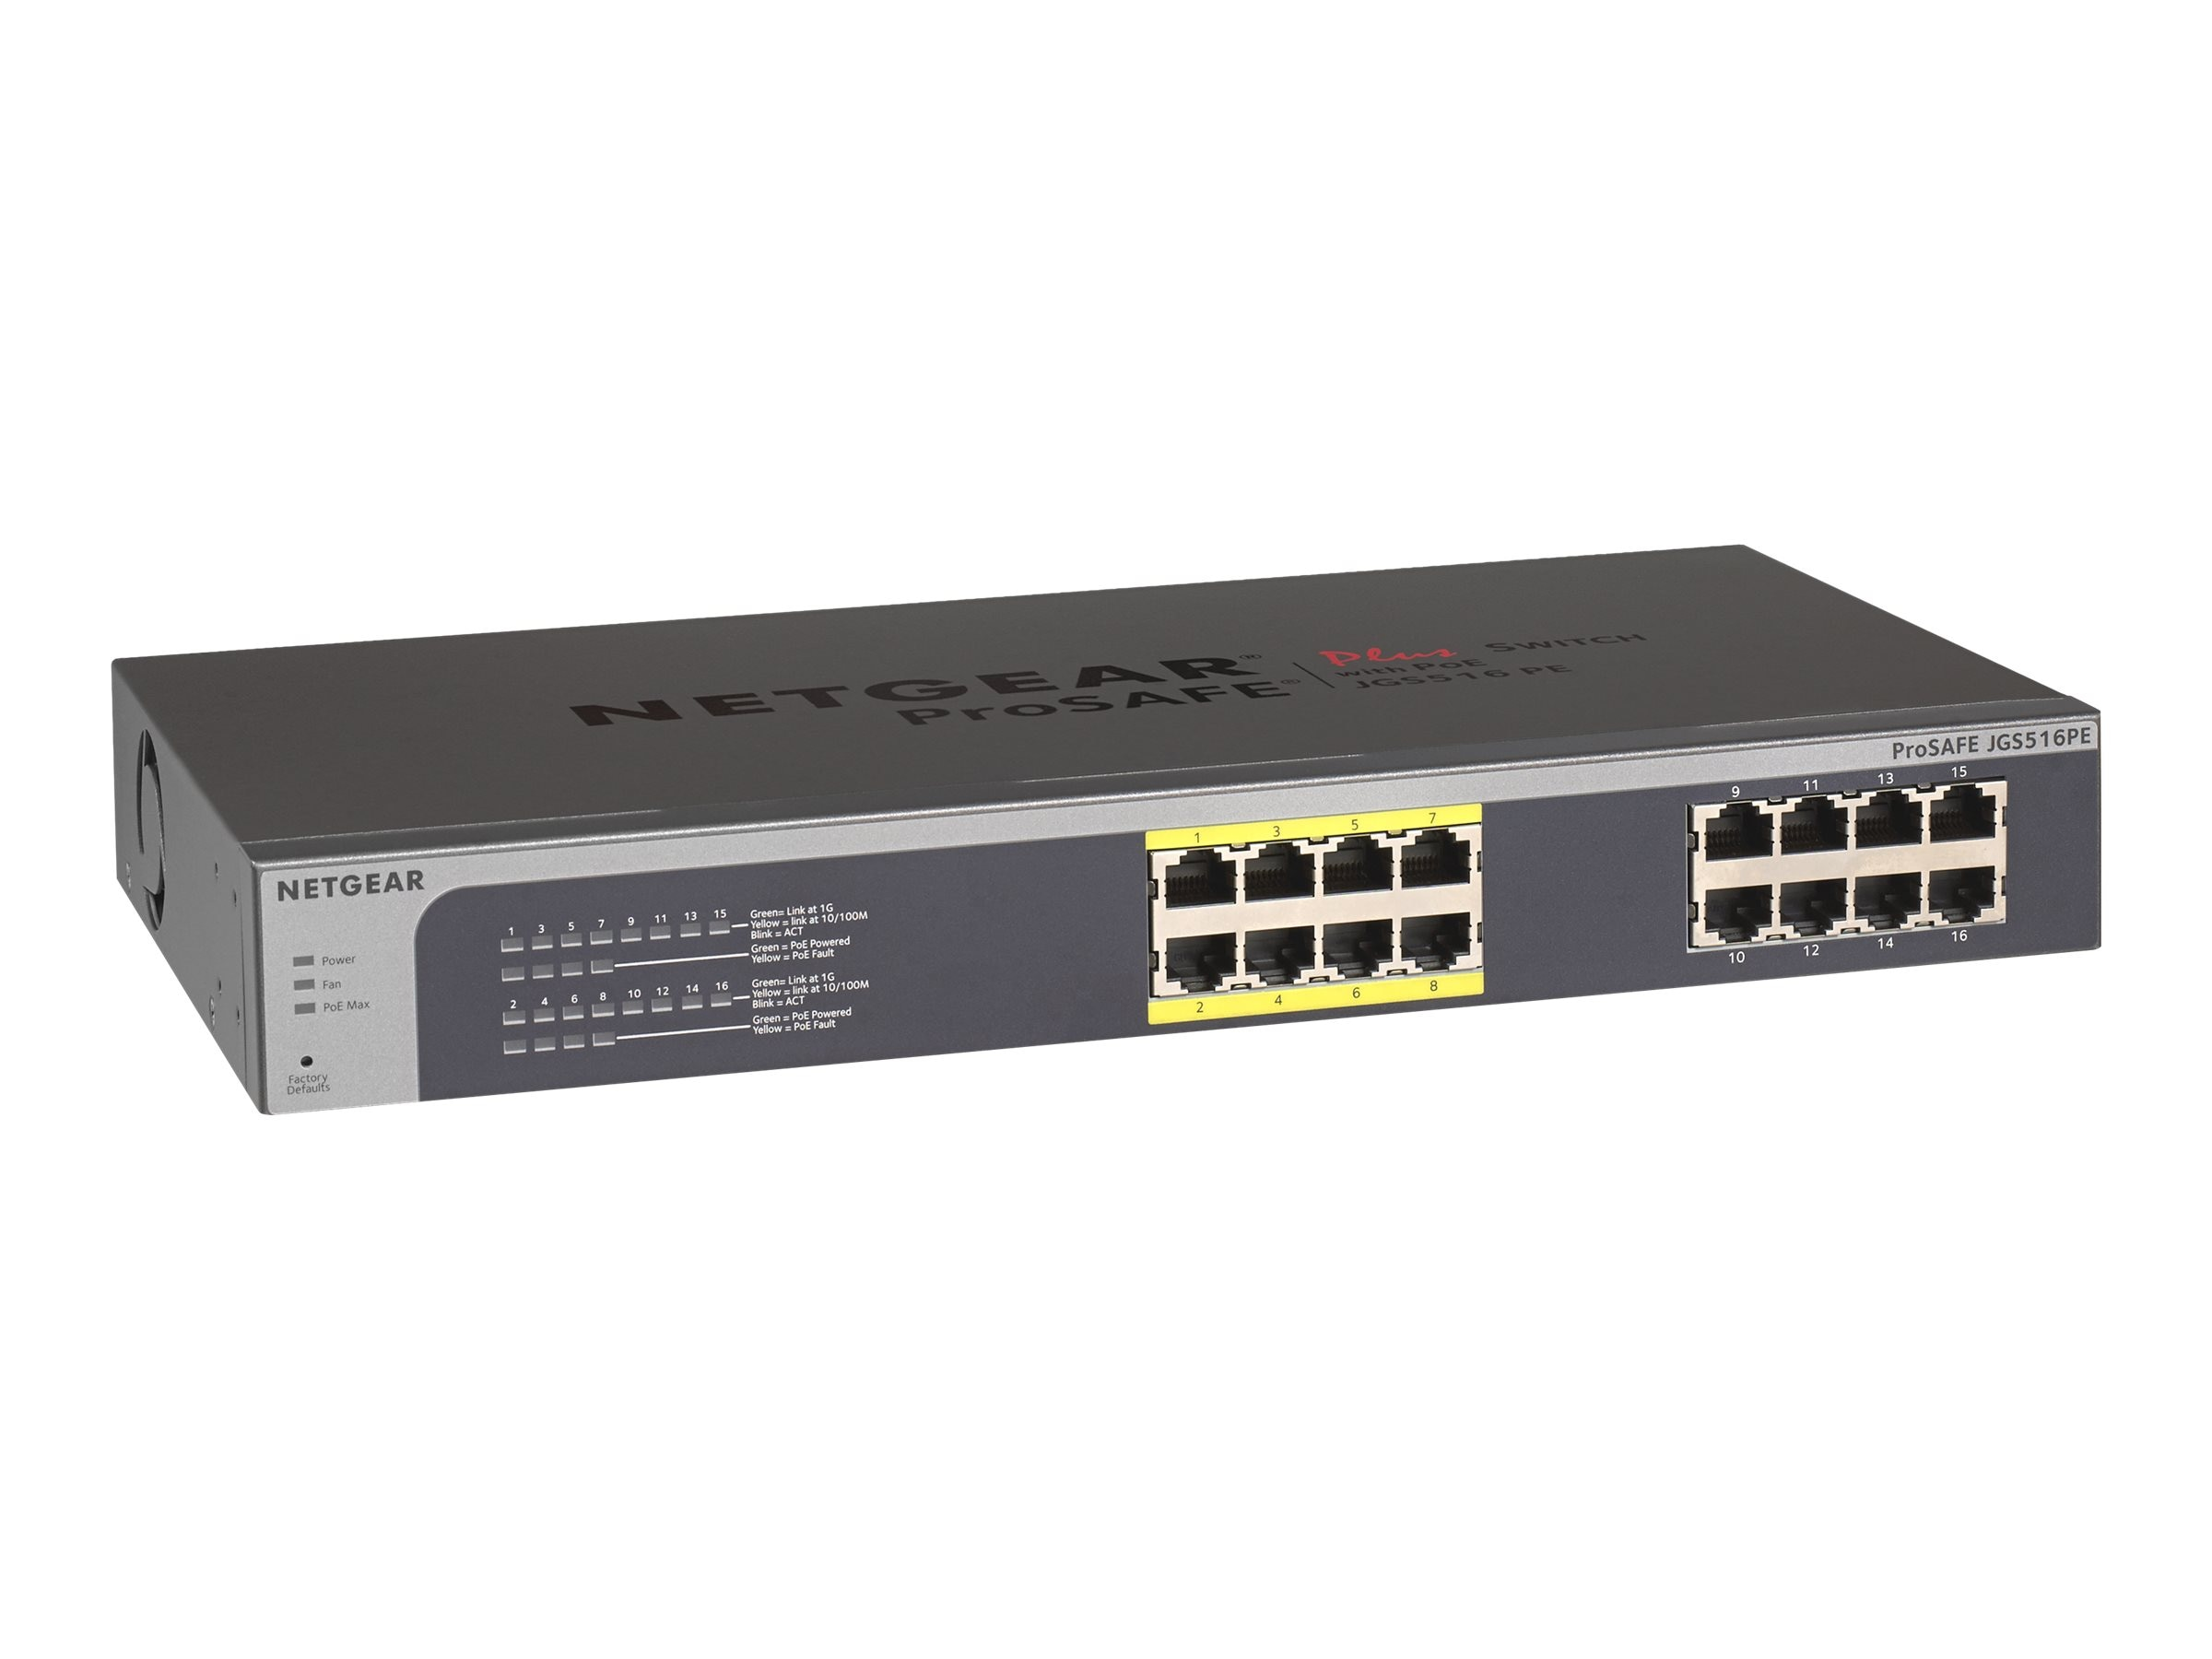 Netgear 16-Port Prosafe Plus Gigabit Switch w PoE